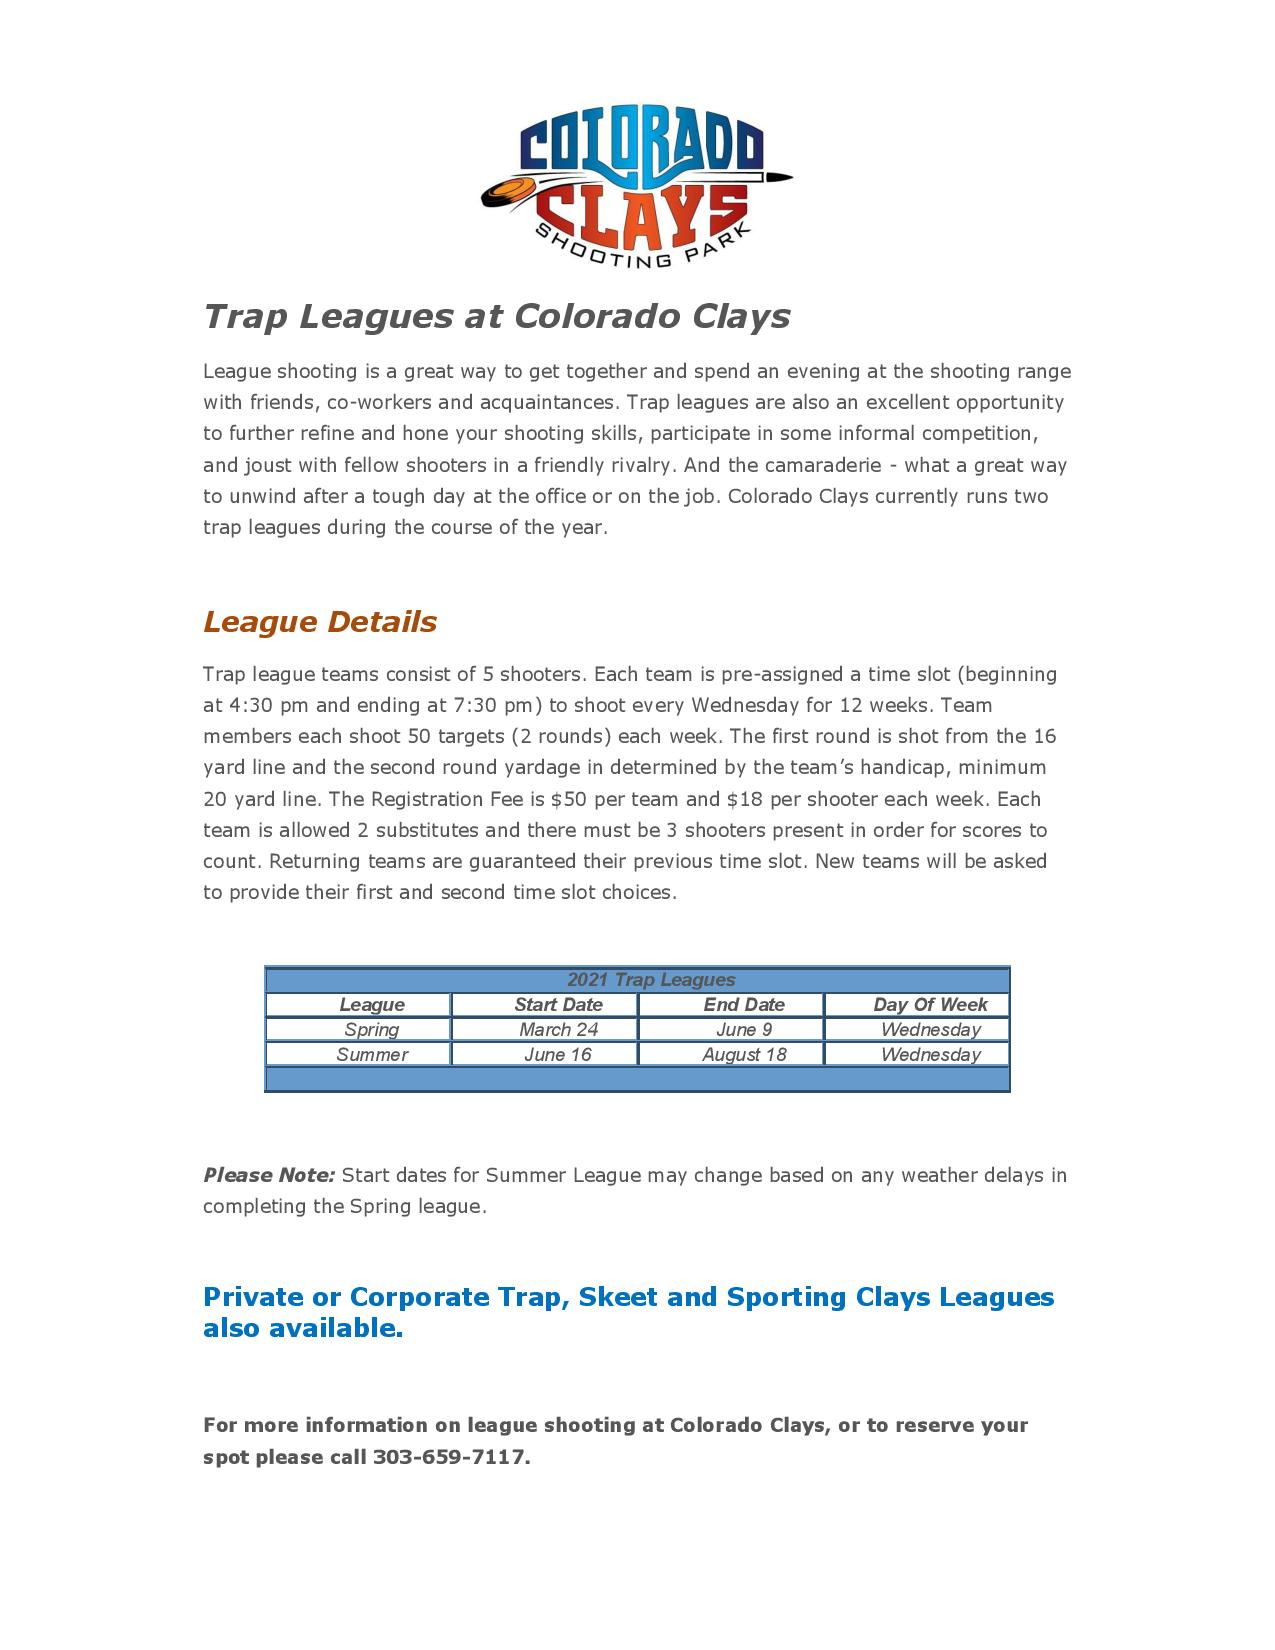 Spring Trap League